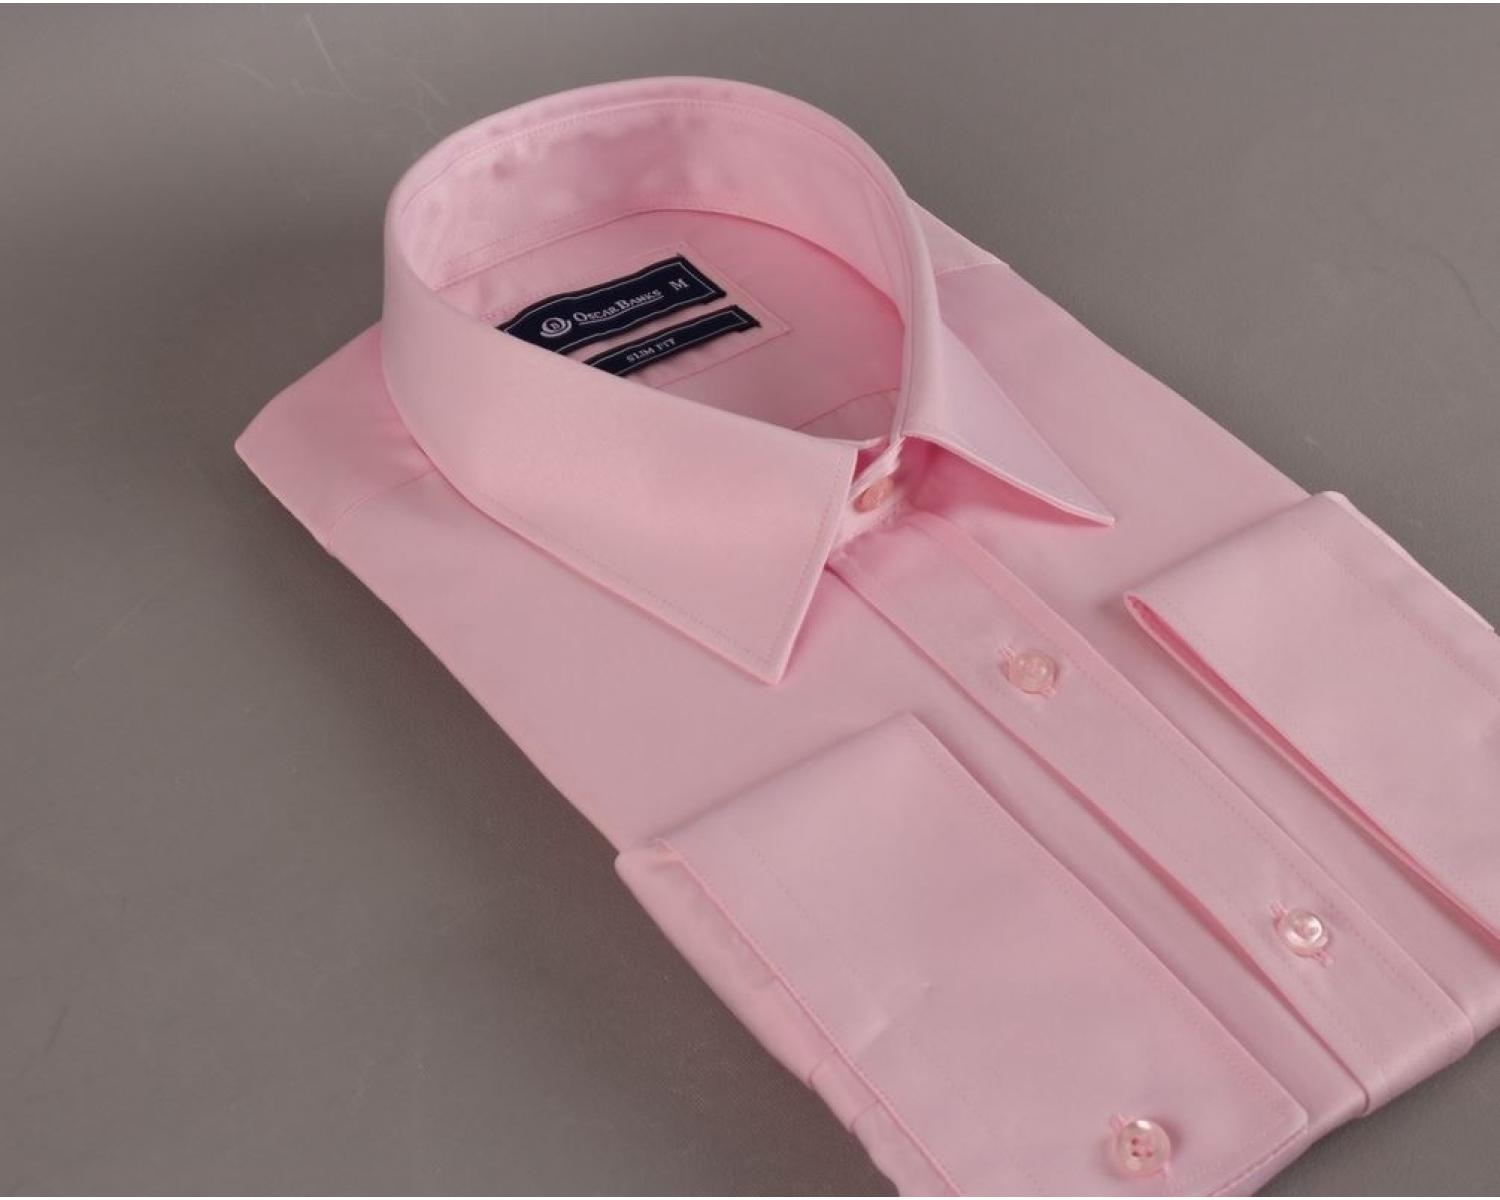 e8270578 SL 5941 Men's pink plain long sleeved shirt - Quality Designed Shirts